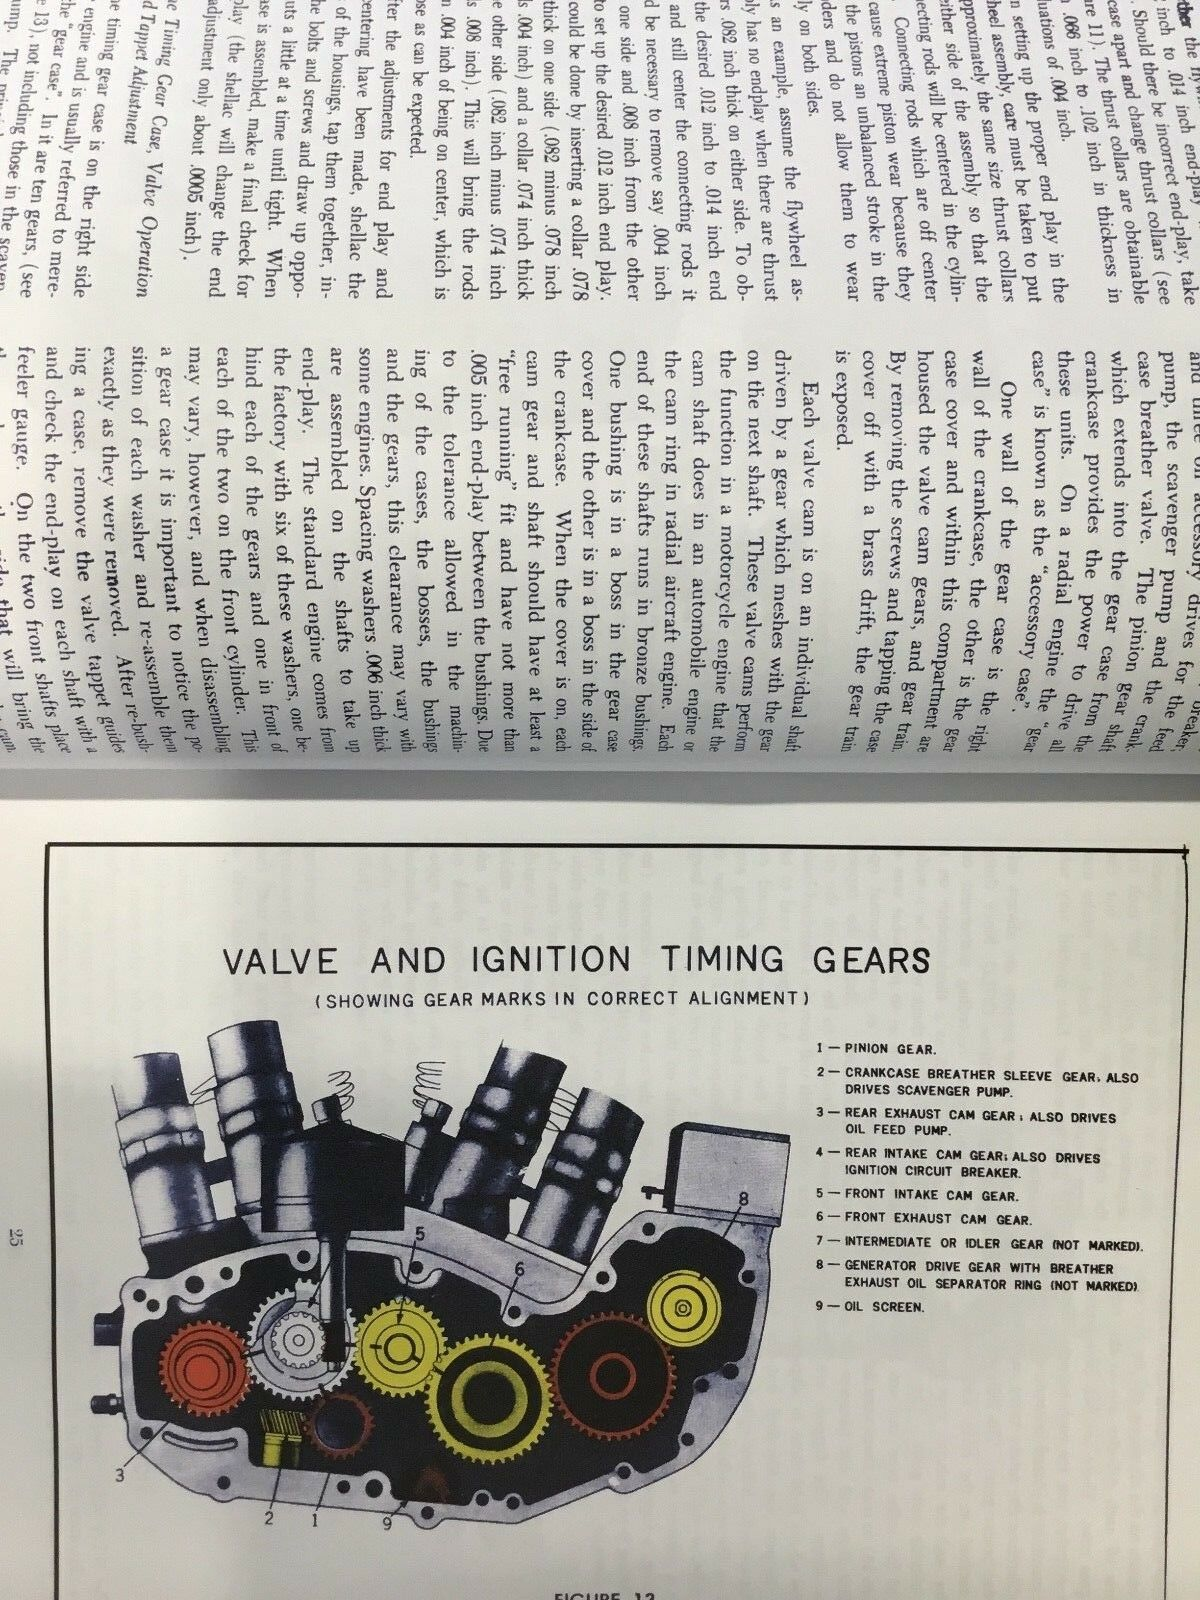 Harley Wla Xa Service Manual Mechanics Hand Book Color 134 Pages 1943 Engine Exhaust Valve Diagram